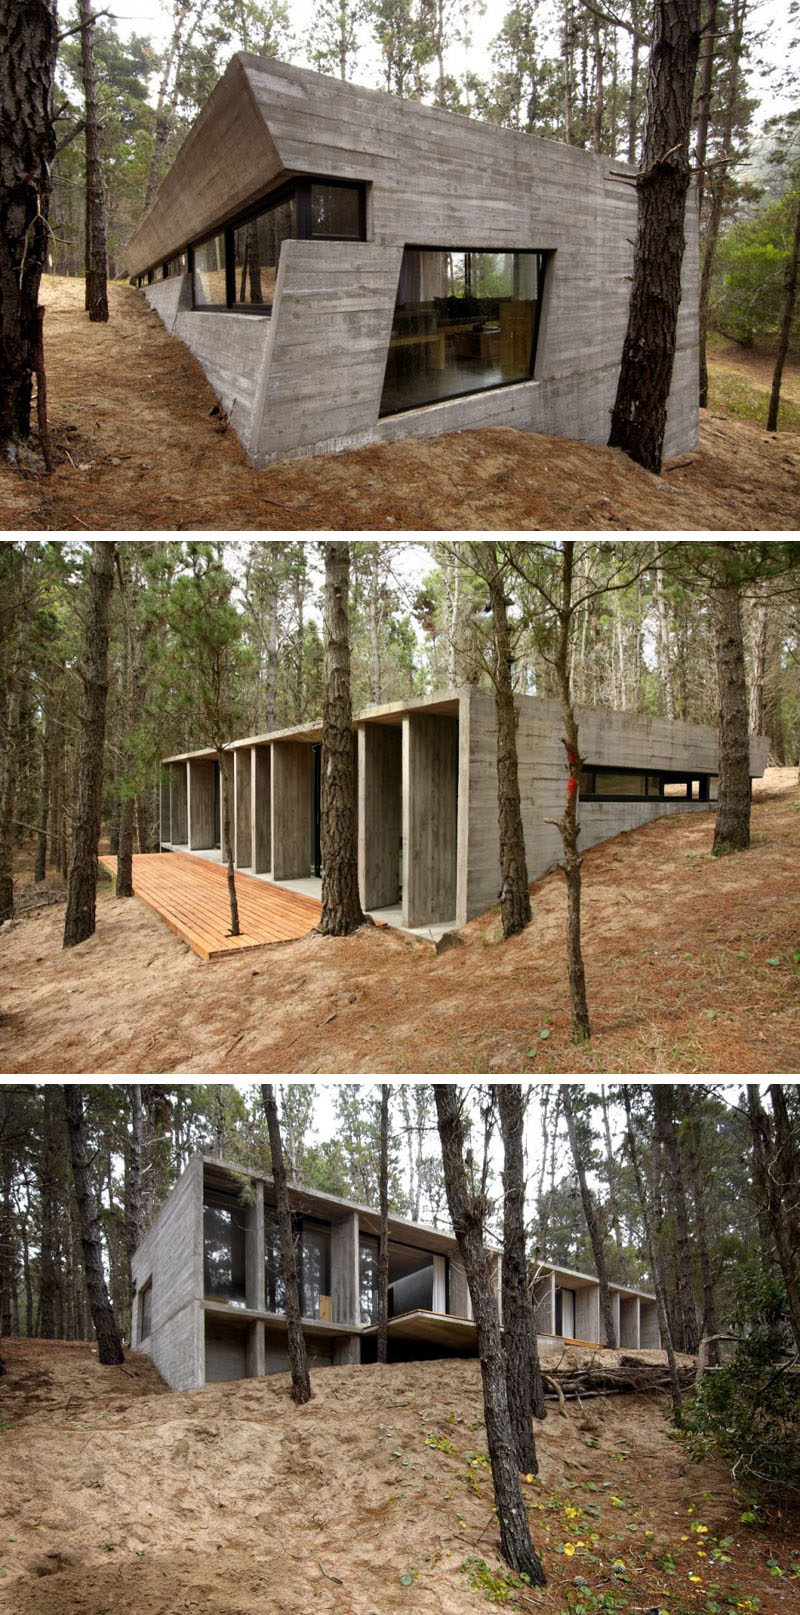 18 modern house in the forest this concrete house contrasts the natural elements of